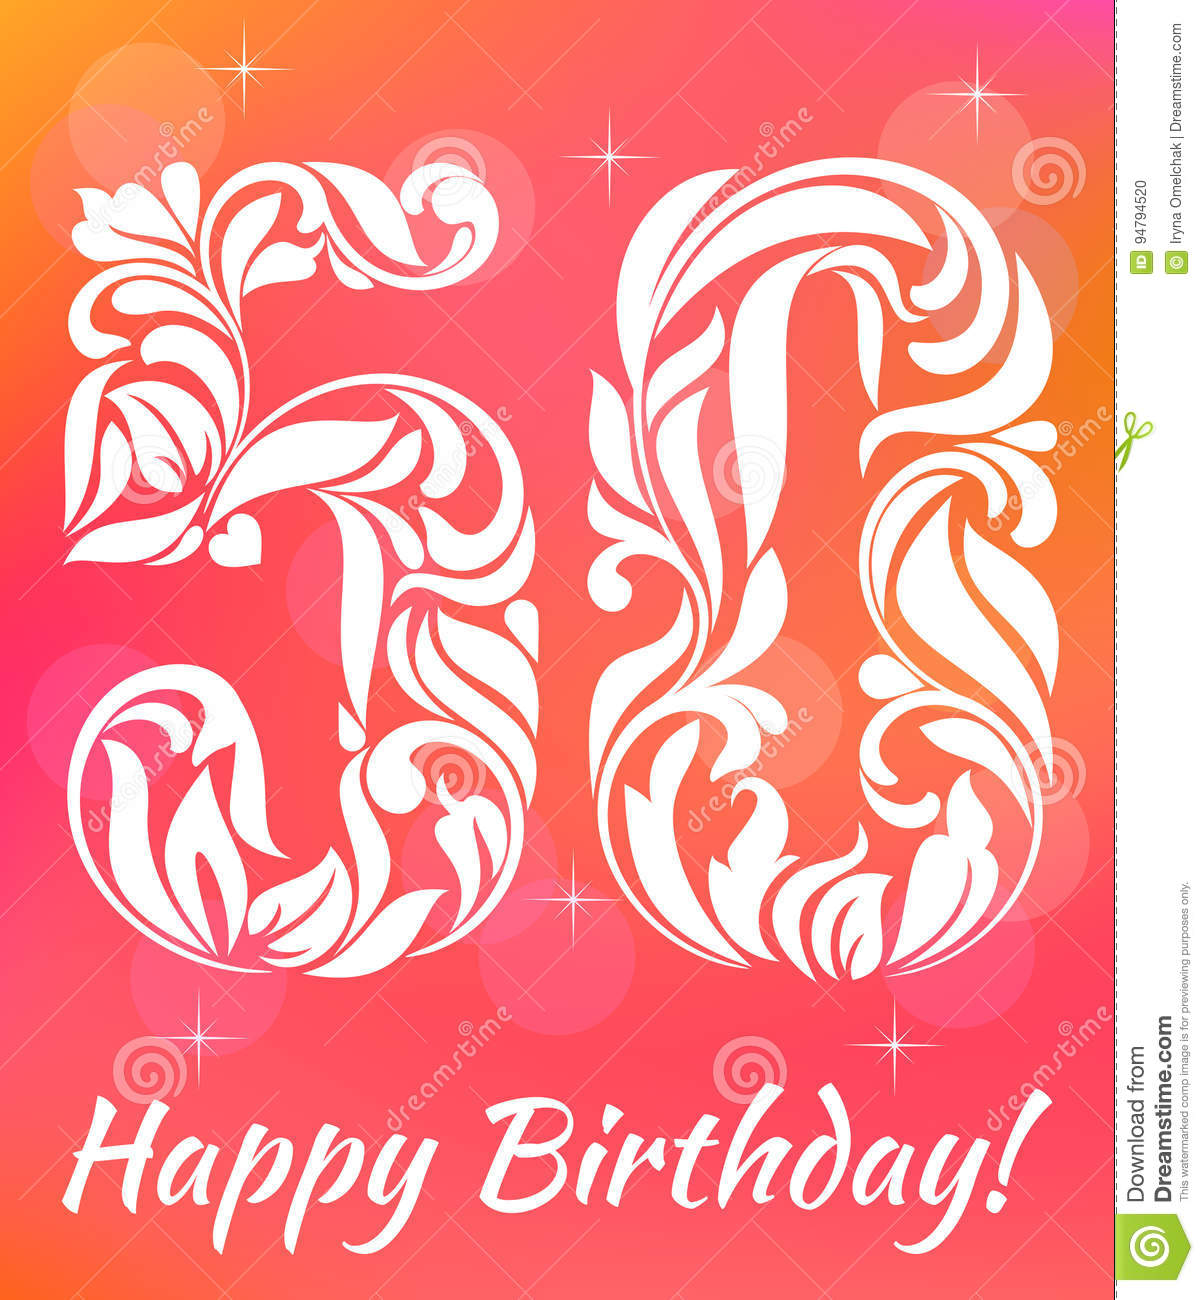 Bright Greeting Card Template Celebrating 50 Years Birthday Decorative Font